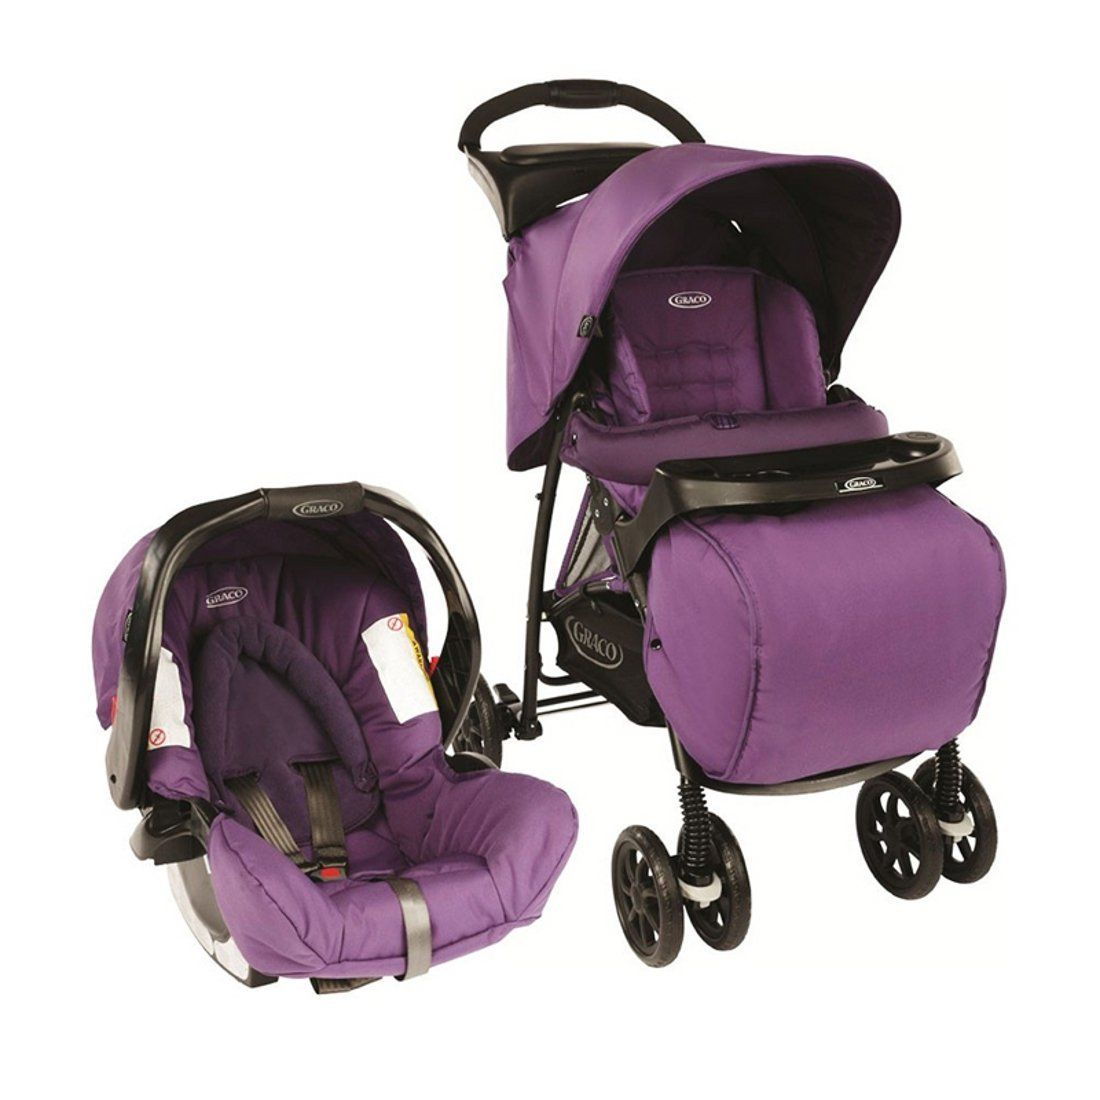 Medium Crop Of Graco Travel System